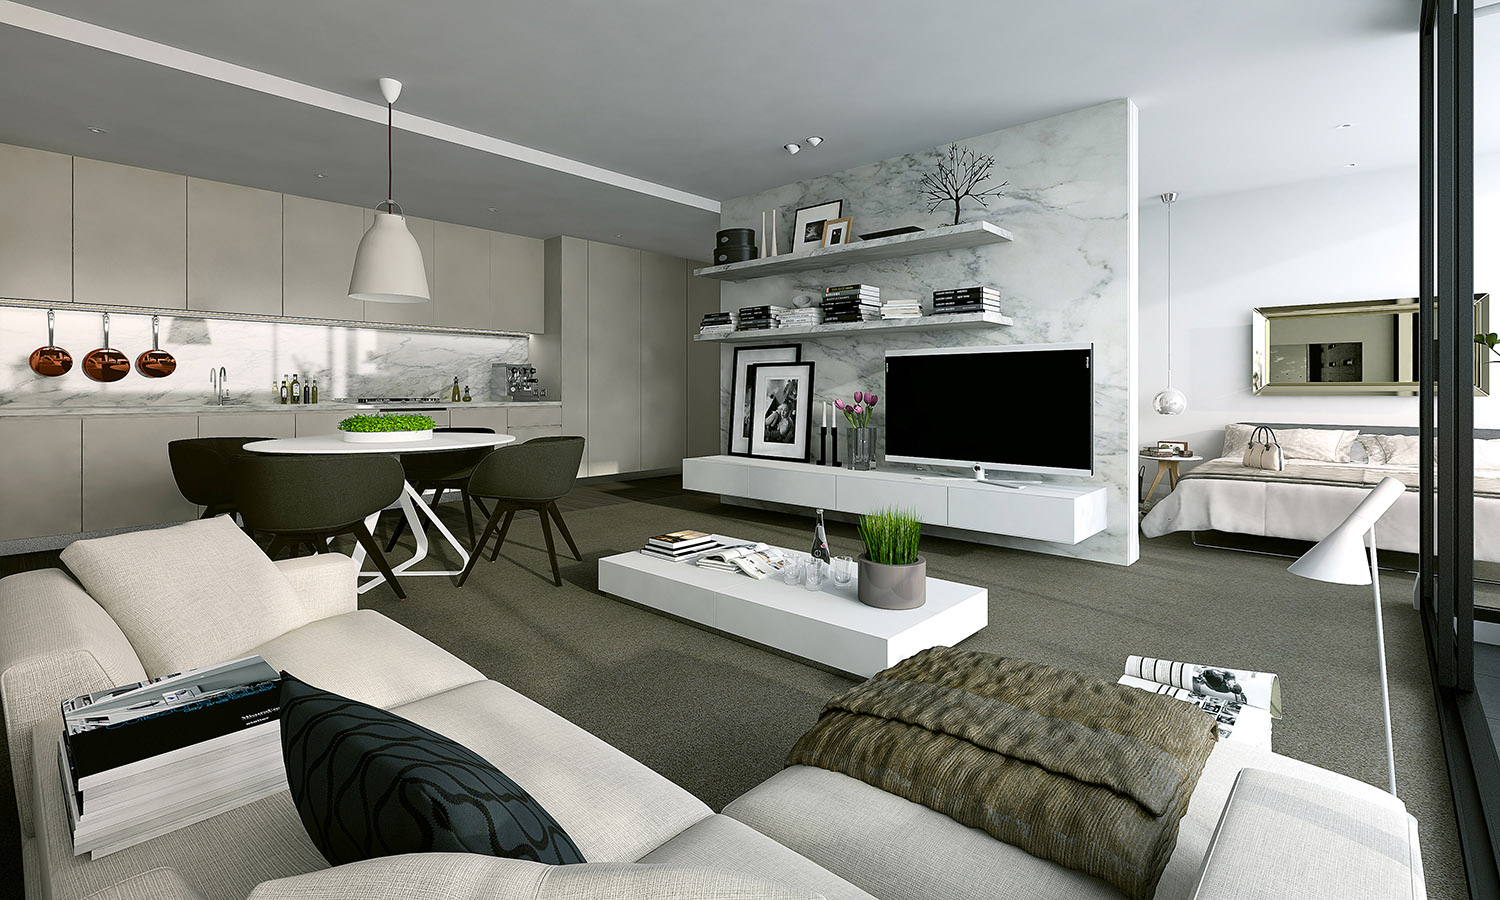 Studio Apartments Design studio apartment interiors inspiration